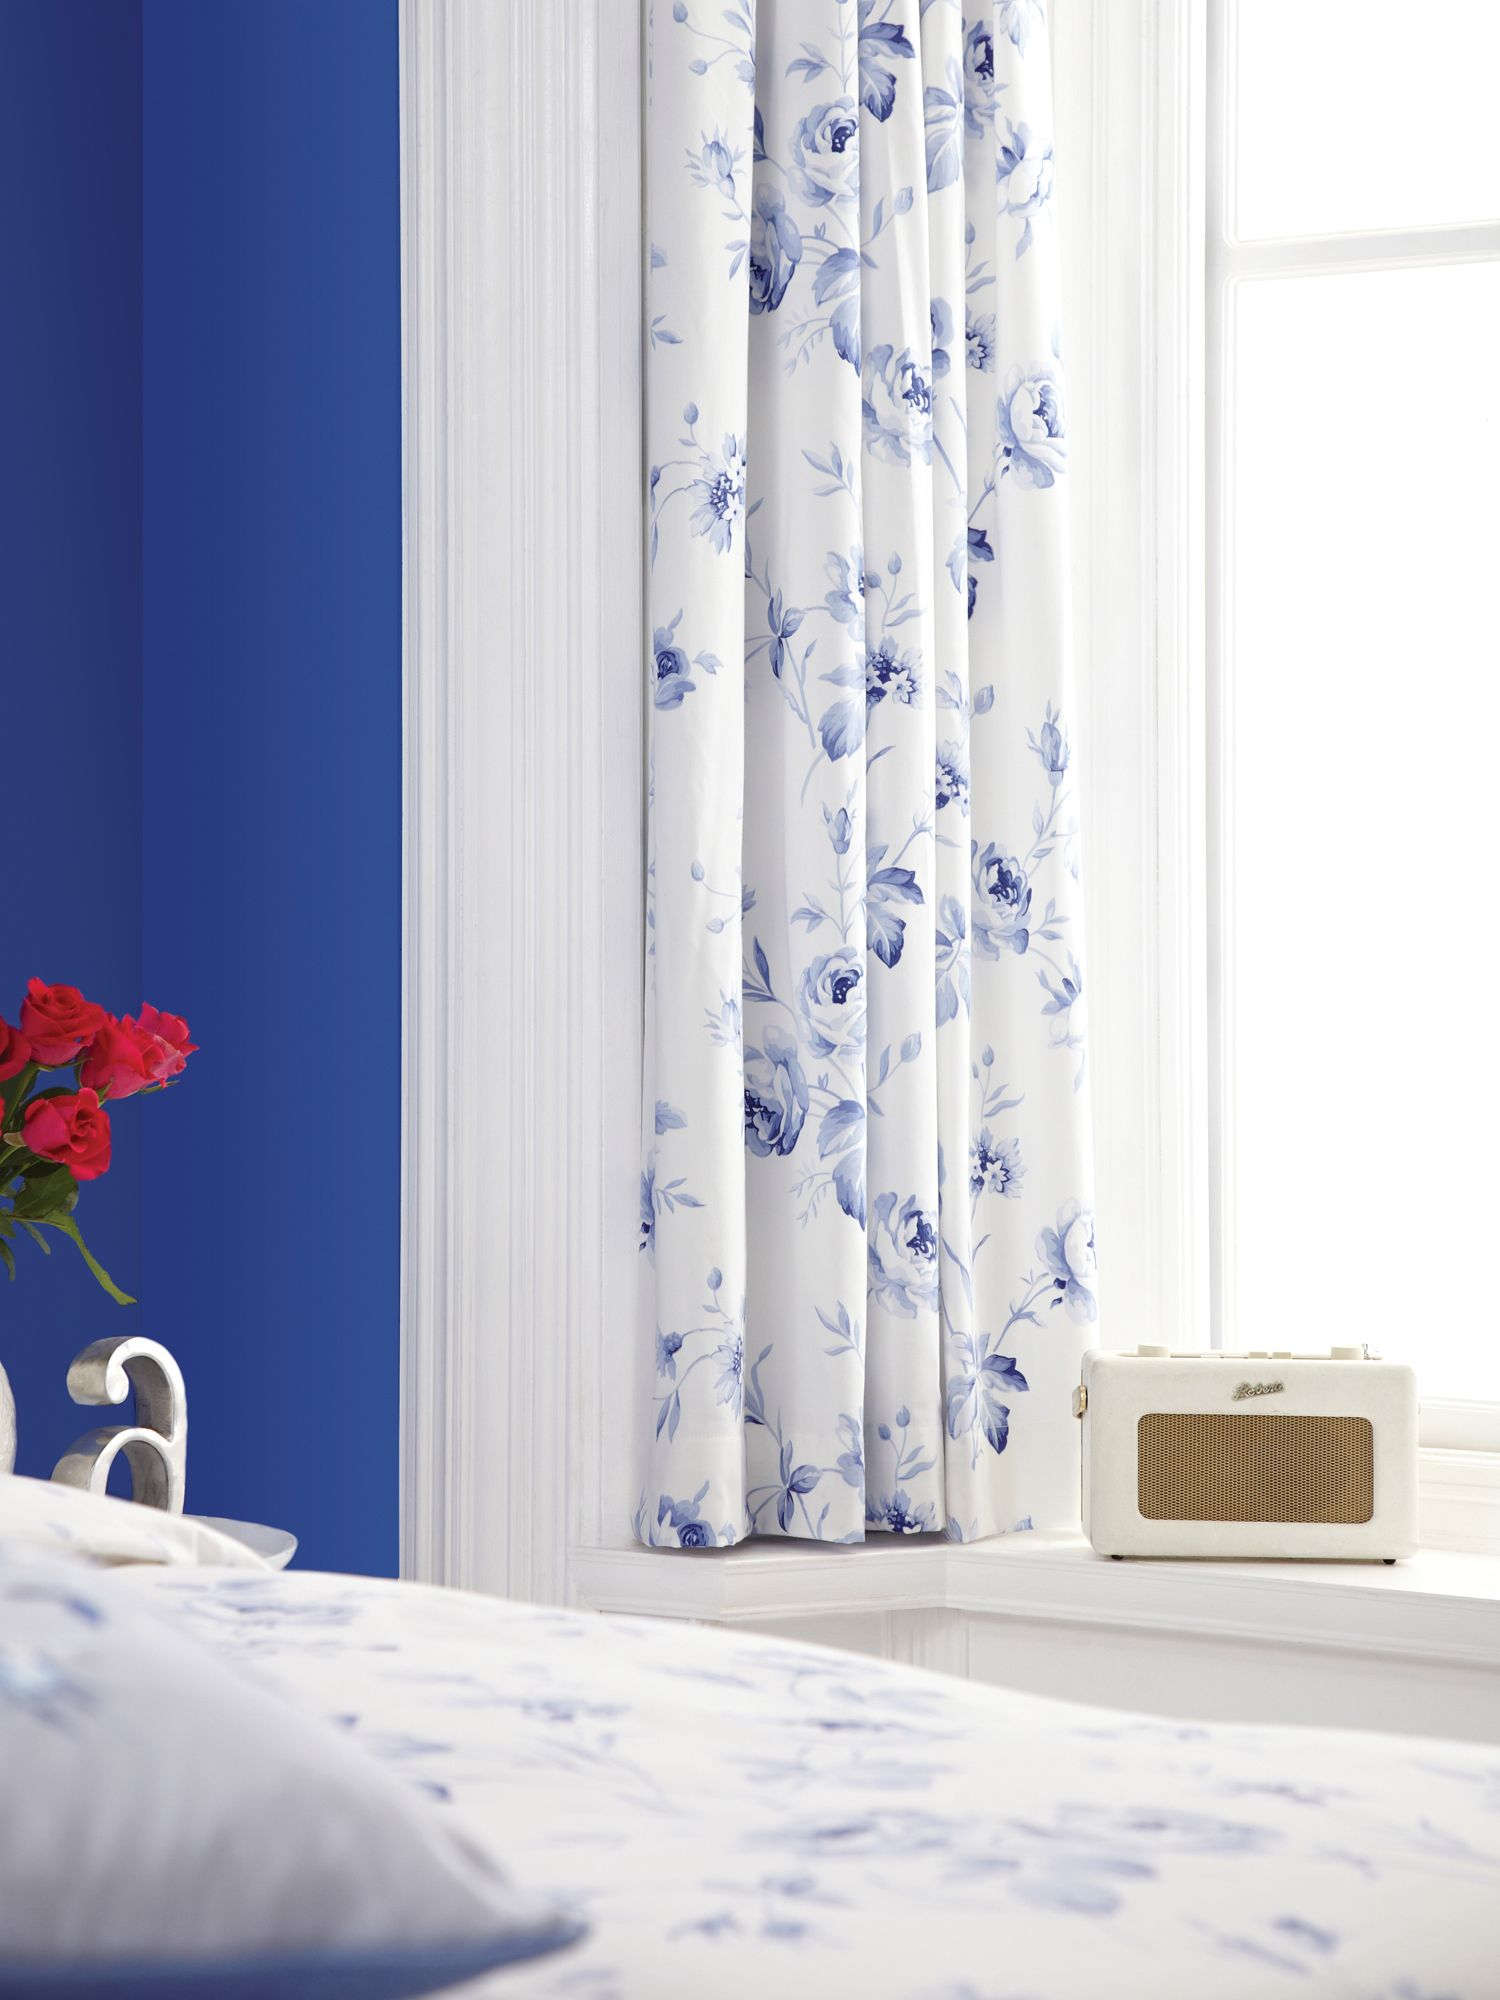 Sussex rose curtains 66x72 (168x183cm) blue